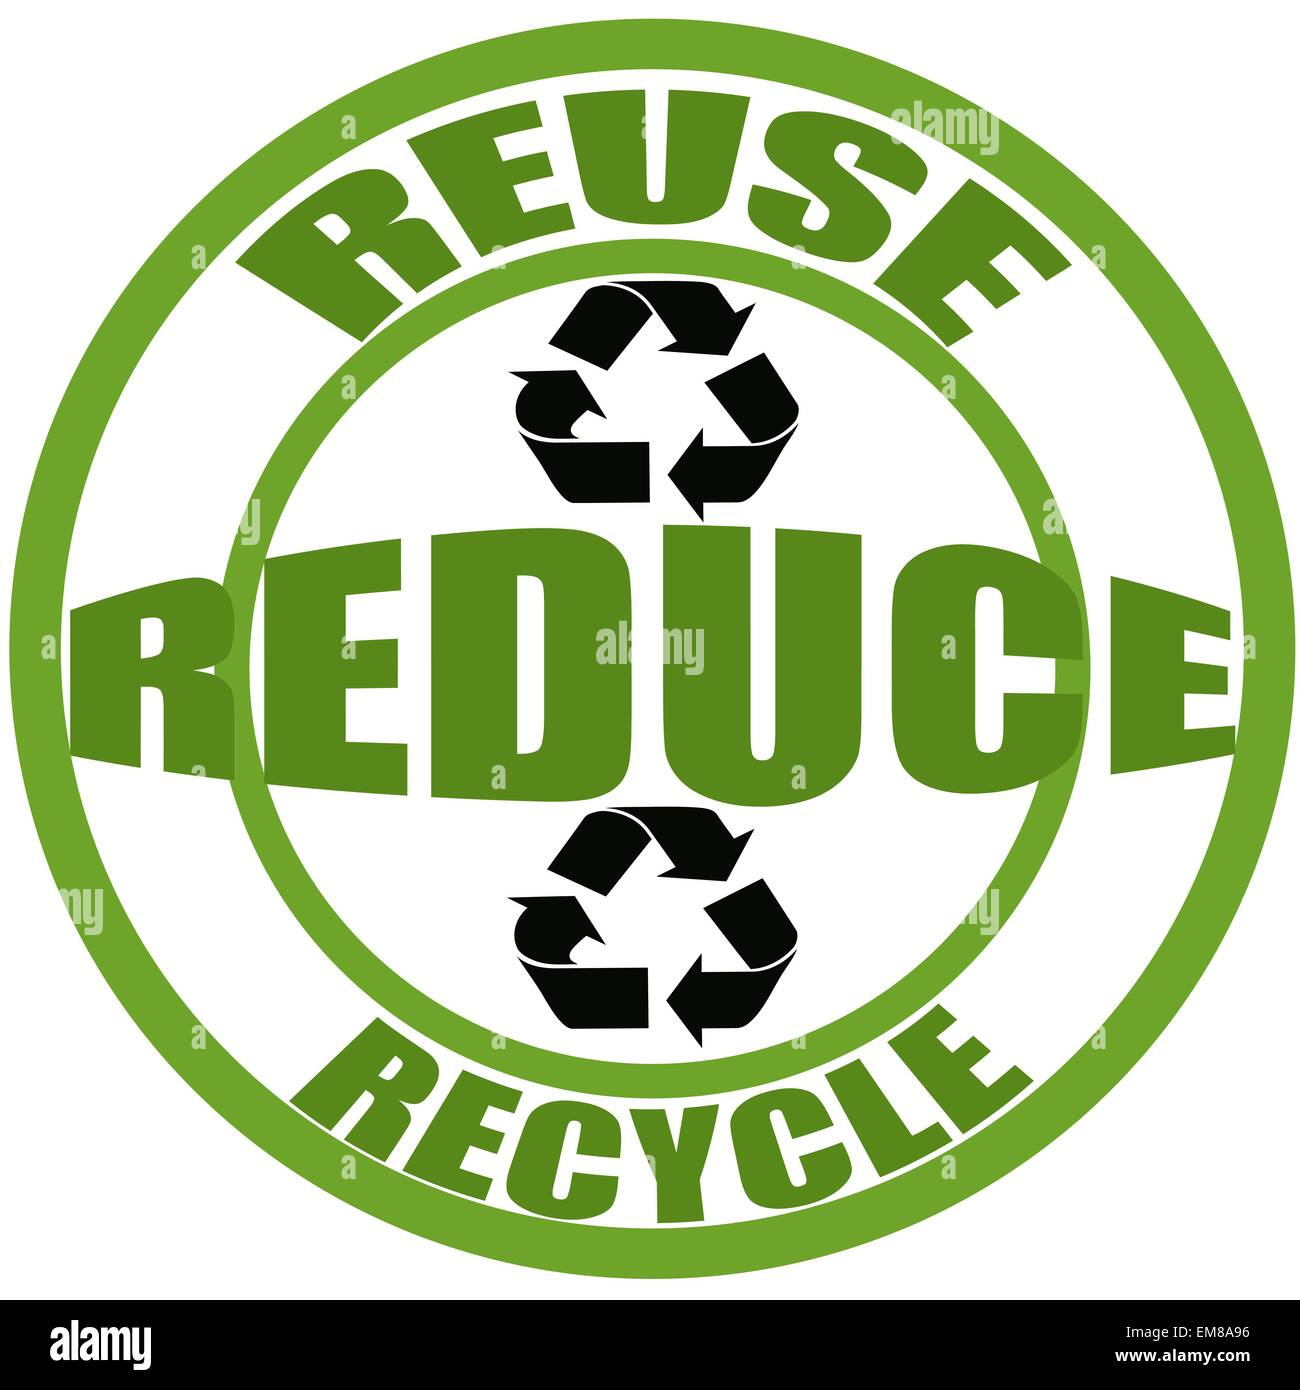 Reuse, reduce and recycle - Stock Image